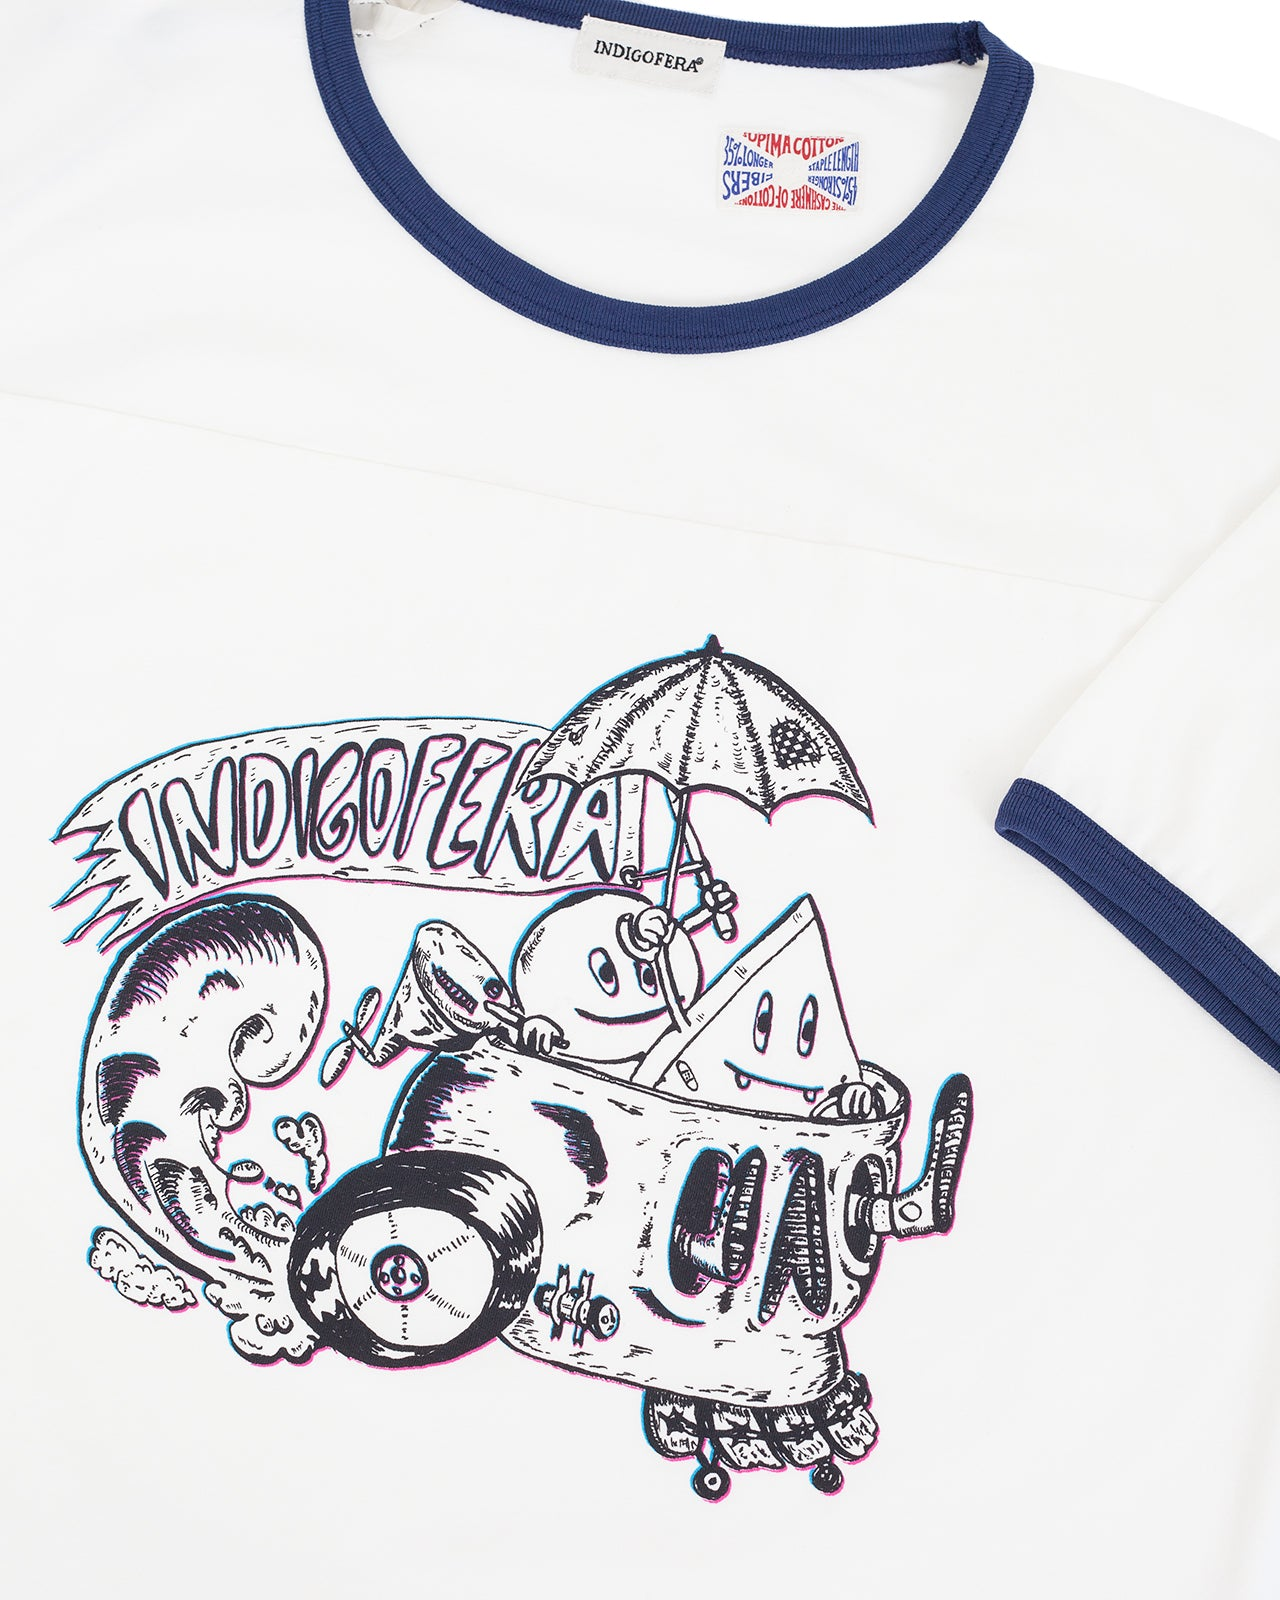 Indigofera Kernion T-Shirt, The Last Endless Summer